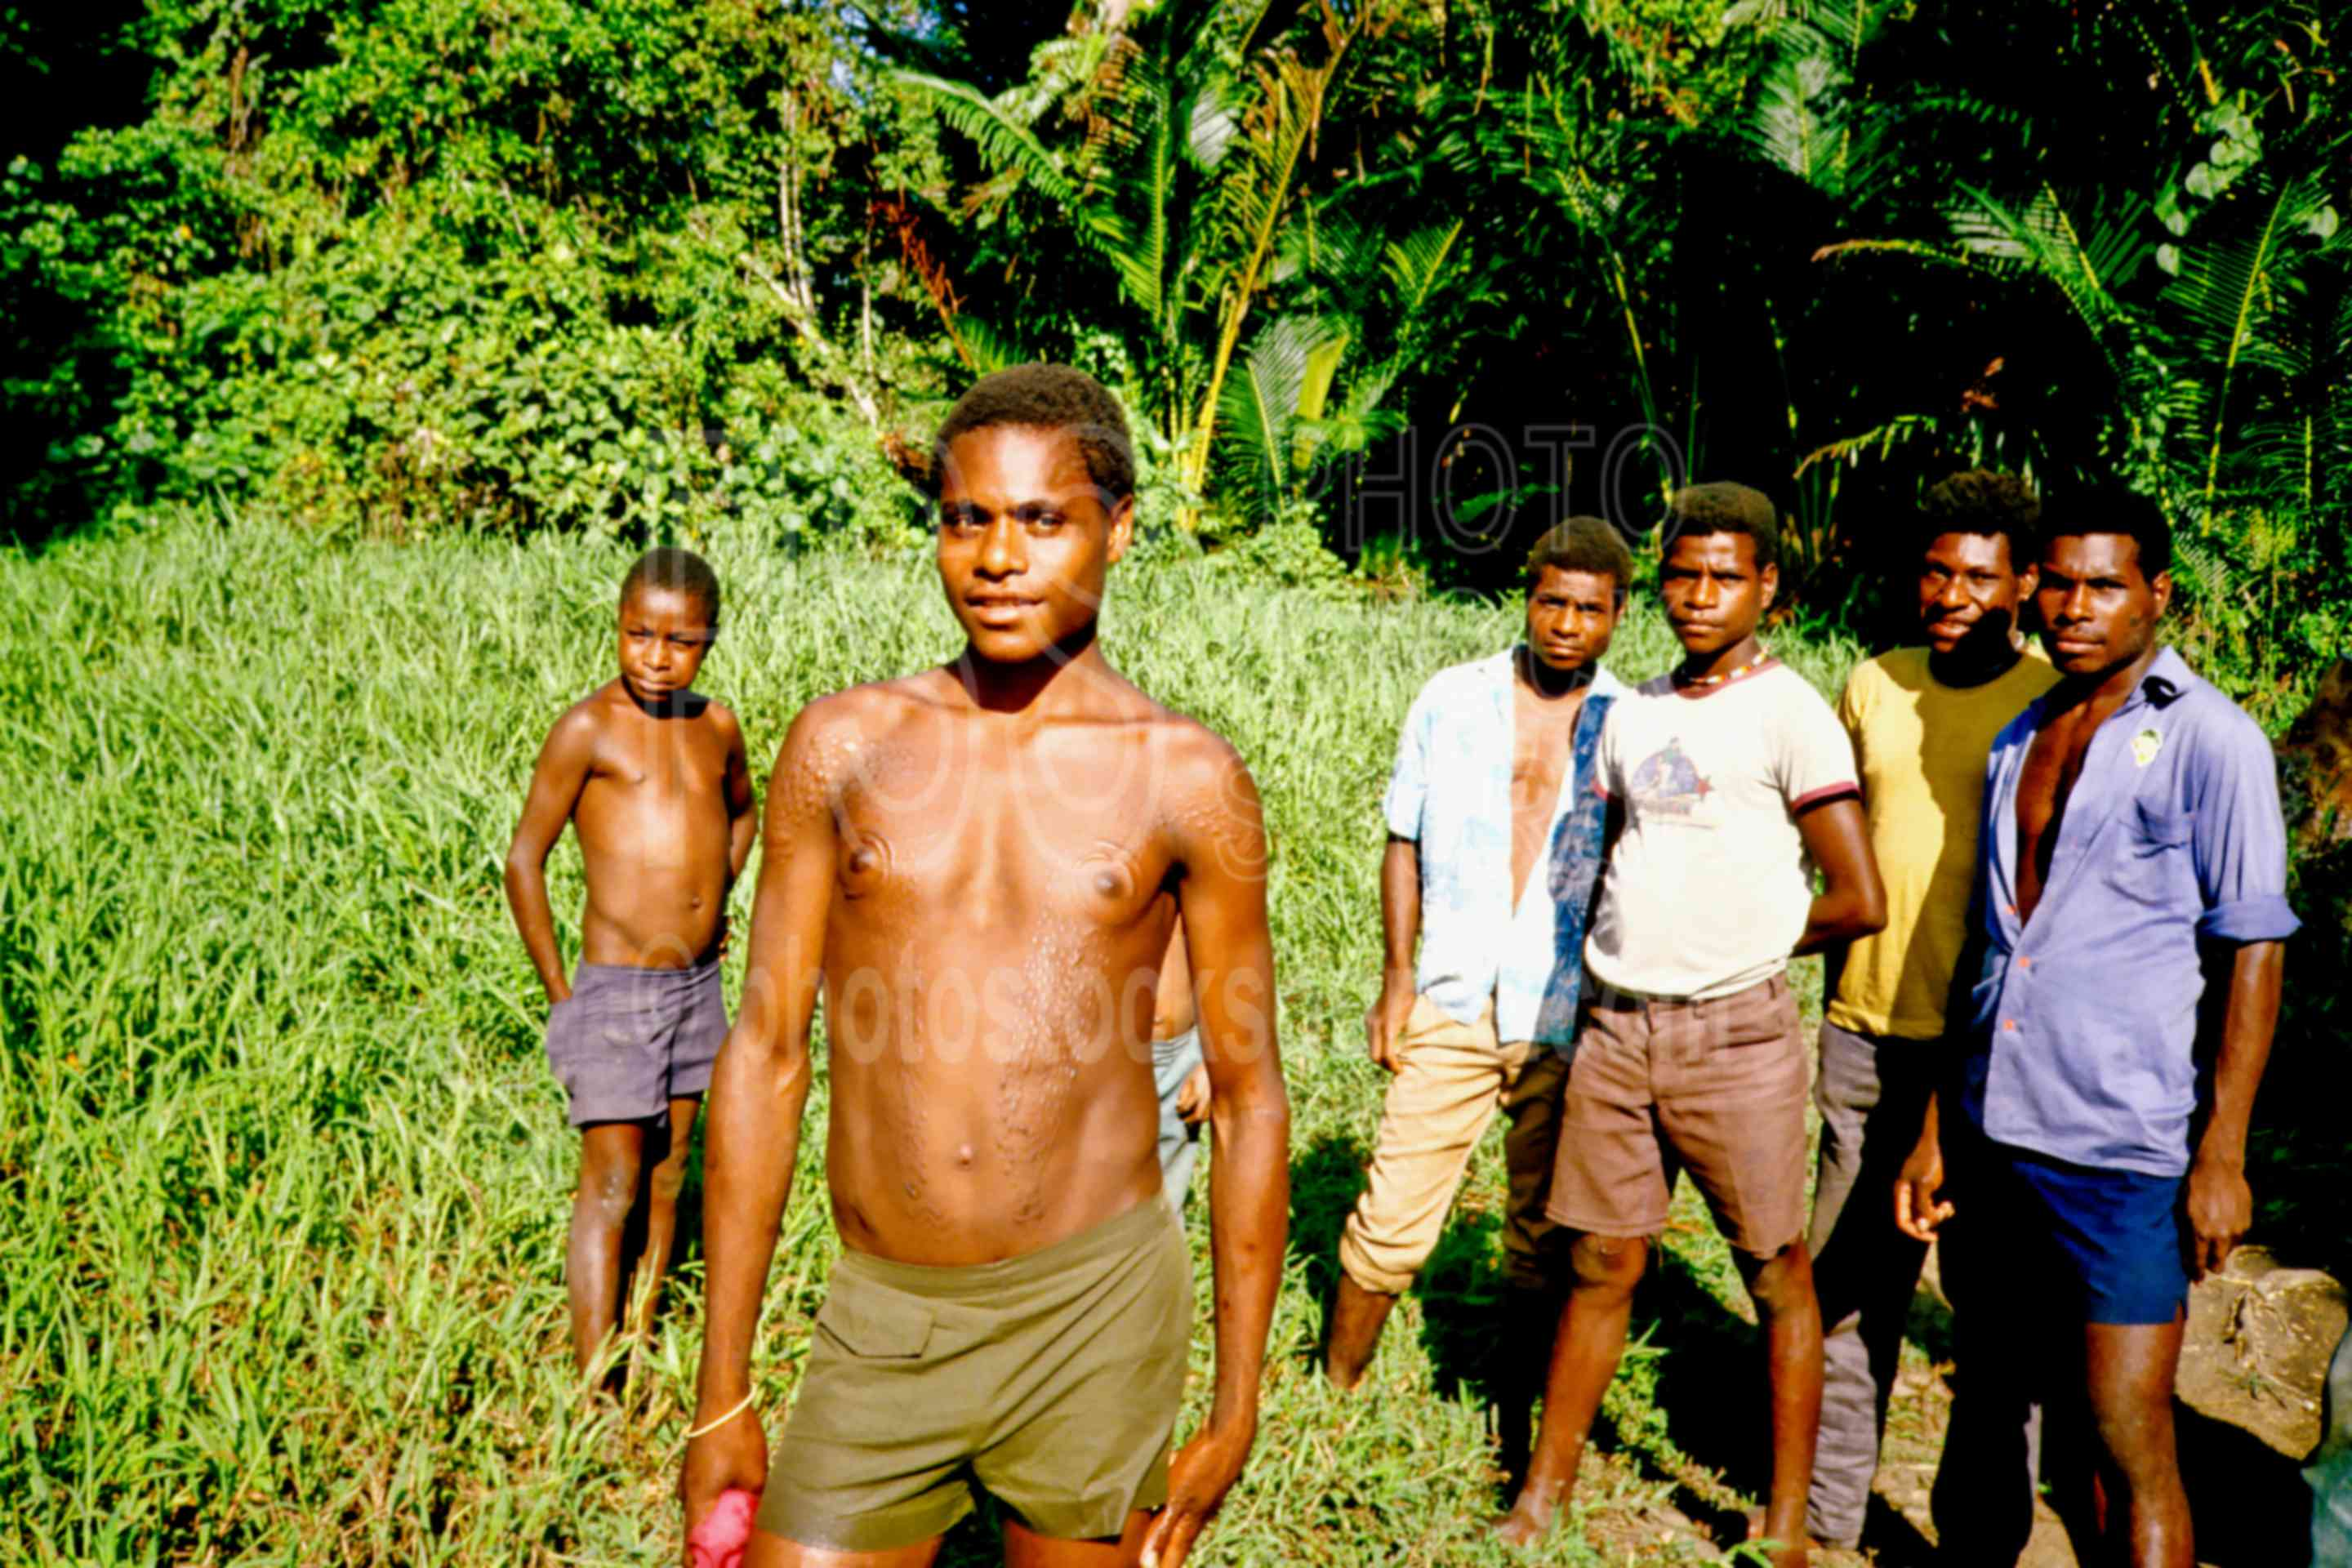 Boy showing initiation scars,boys,ceremonial,group,initiation,scar,scarring,scars